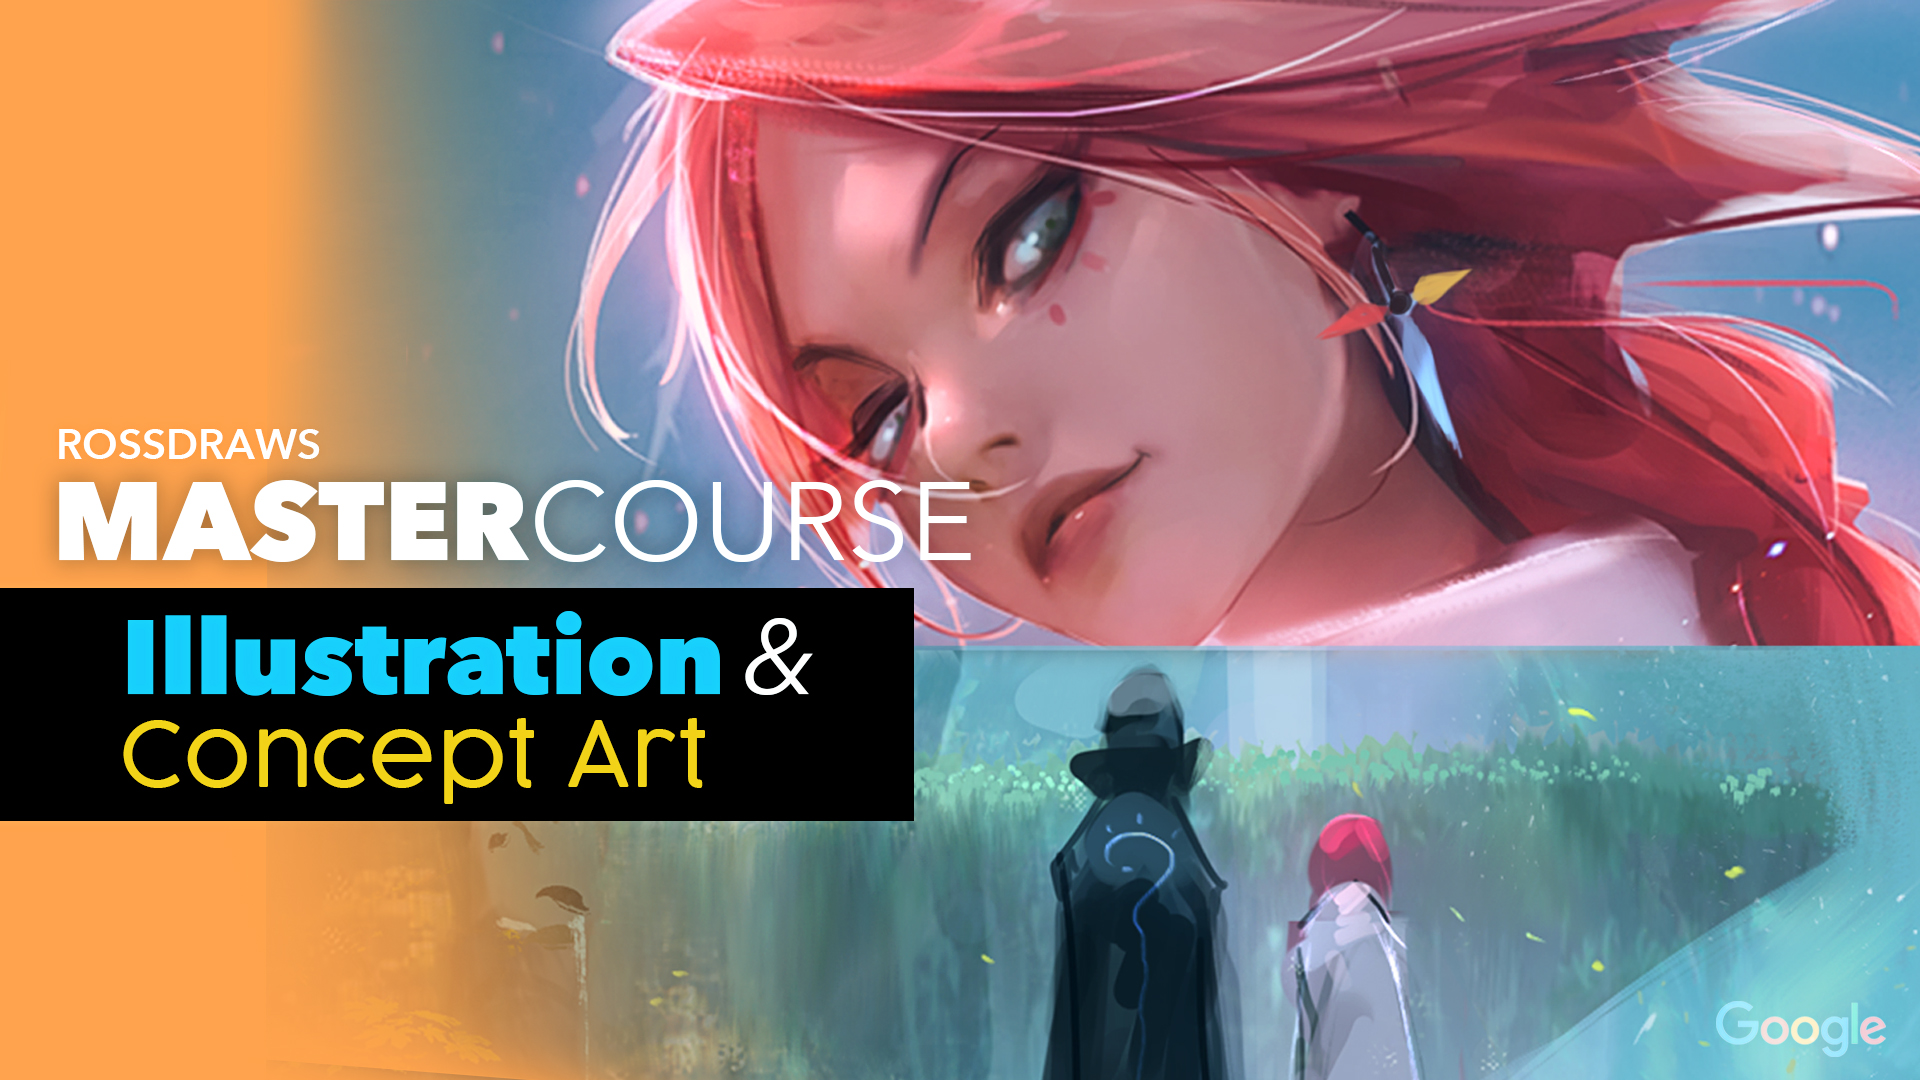 Master Course Cover2.jpg